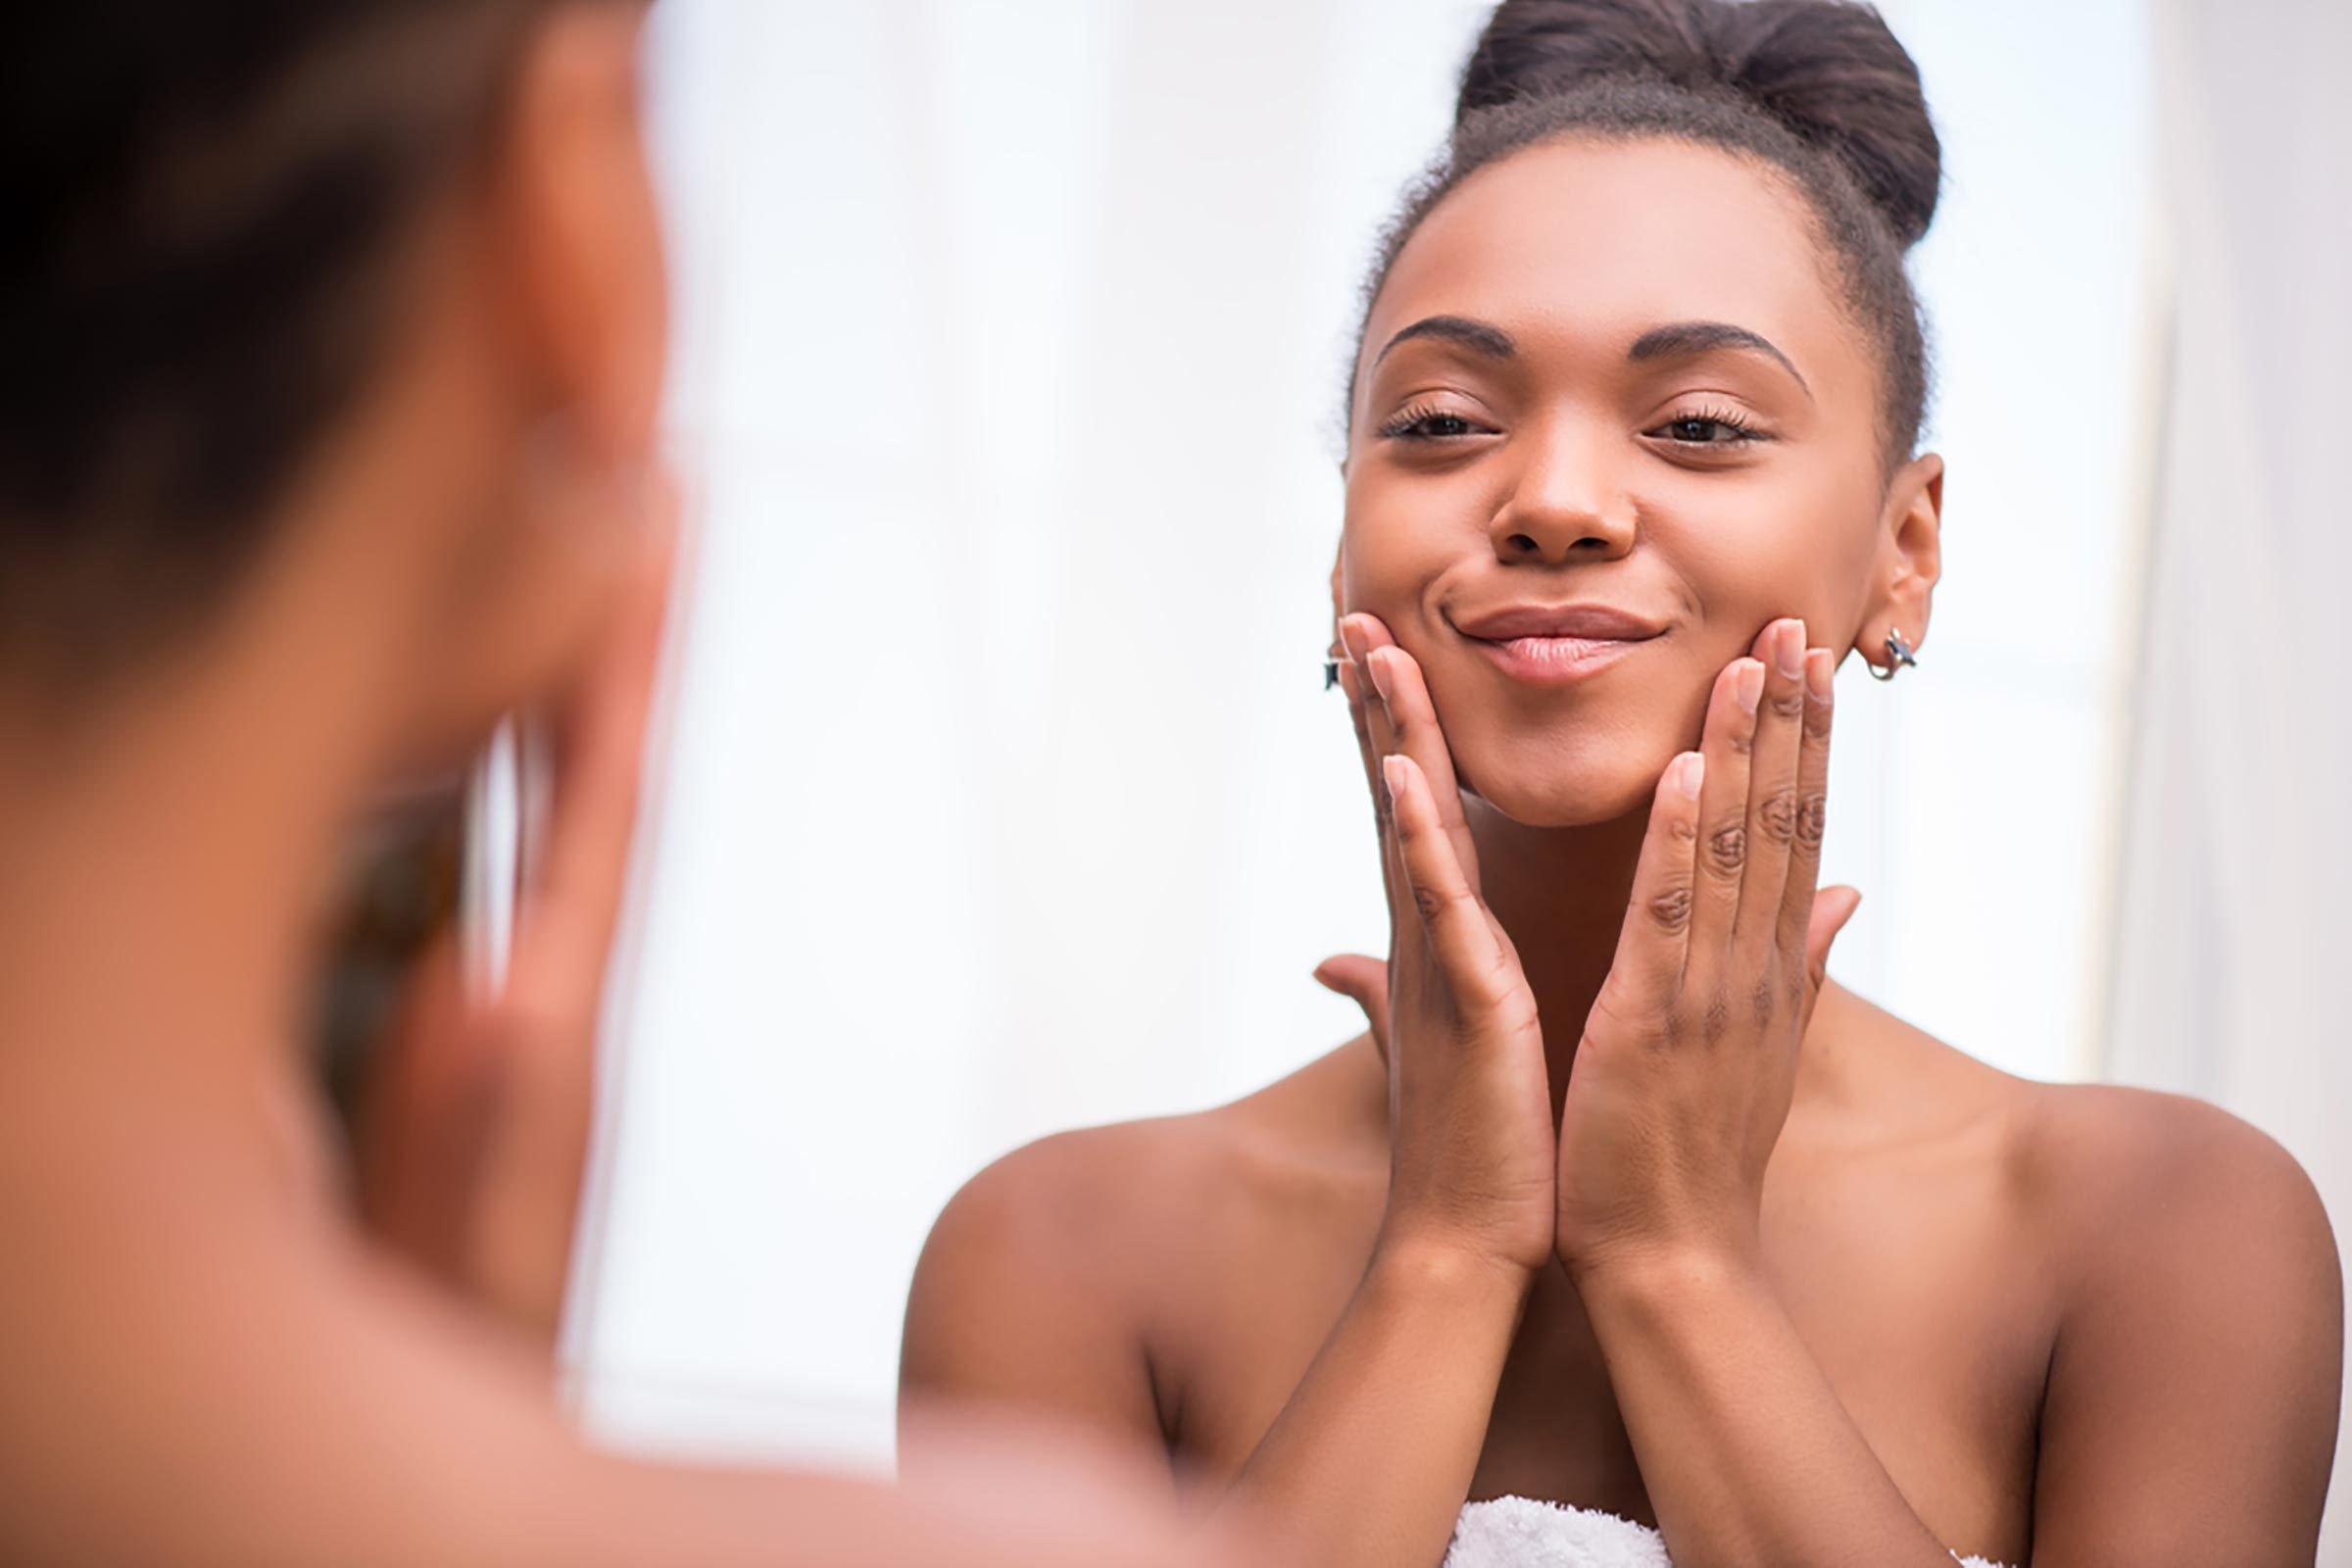 Woman smiling and examining her complexion in the mirror